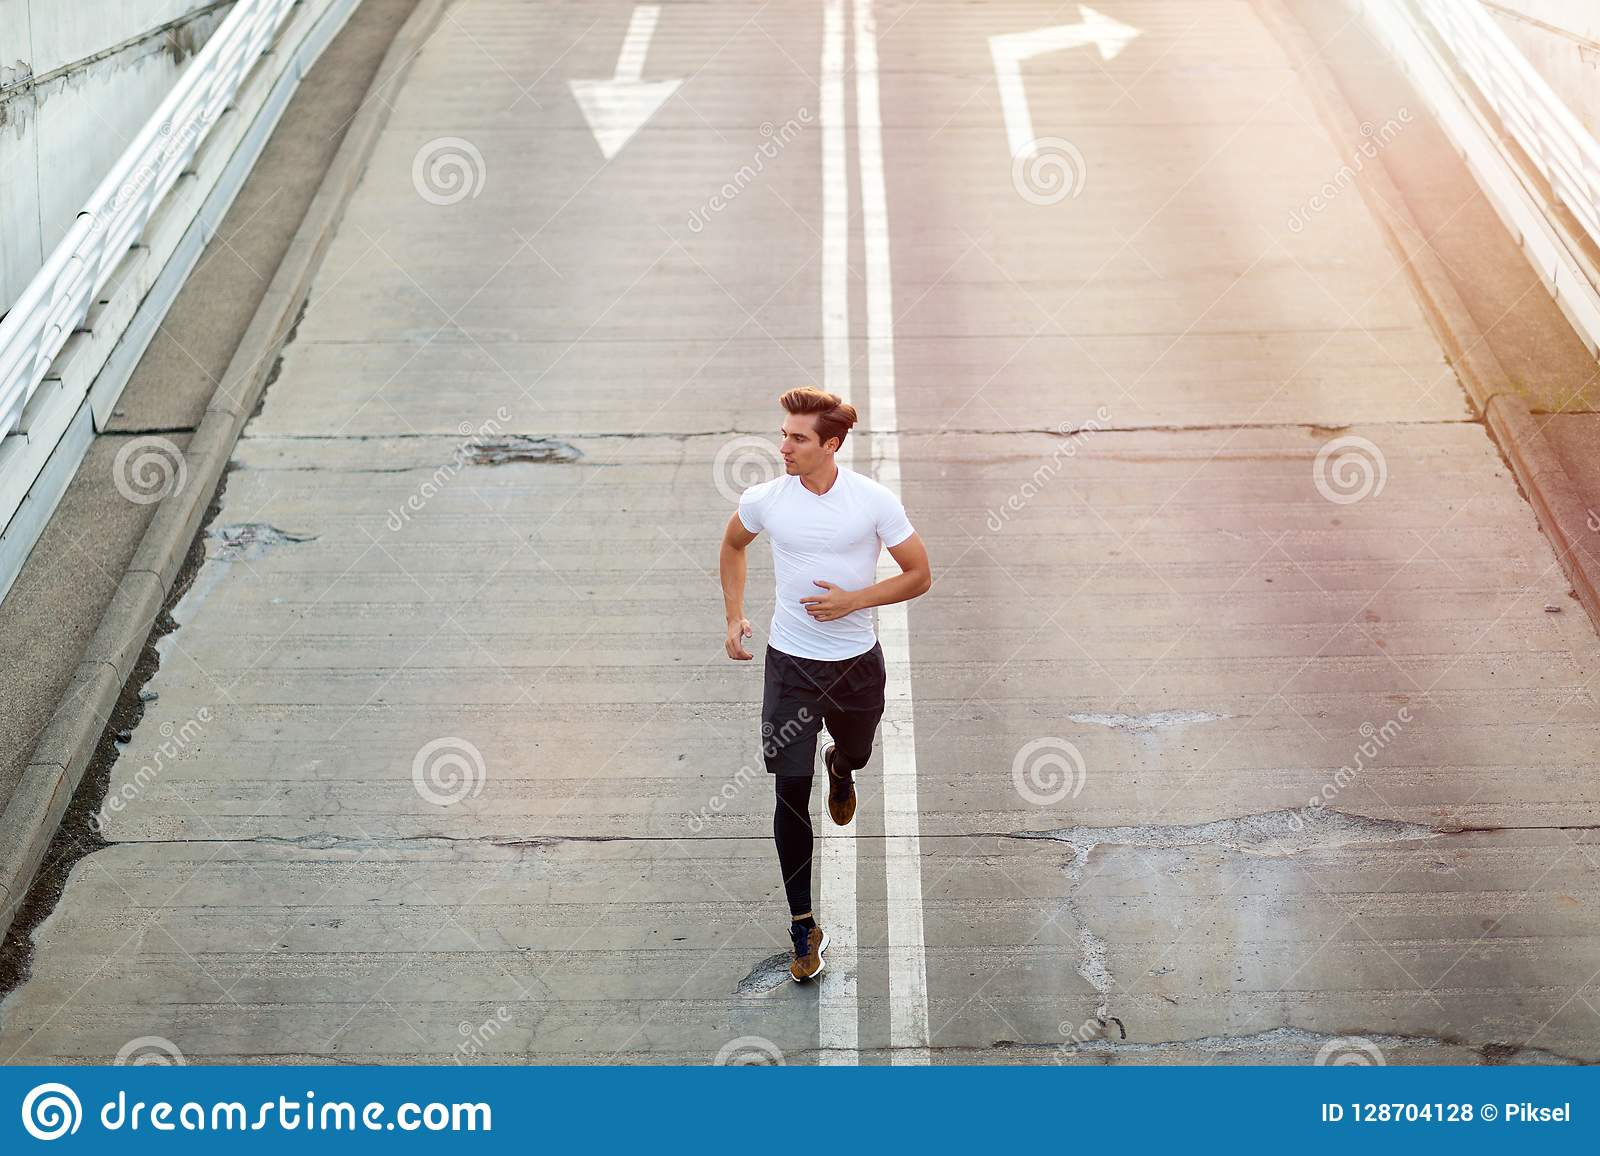 Young Man Running In Urban Area Stock Photo - Image of ...